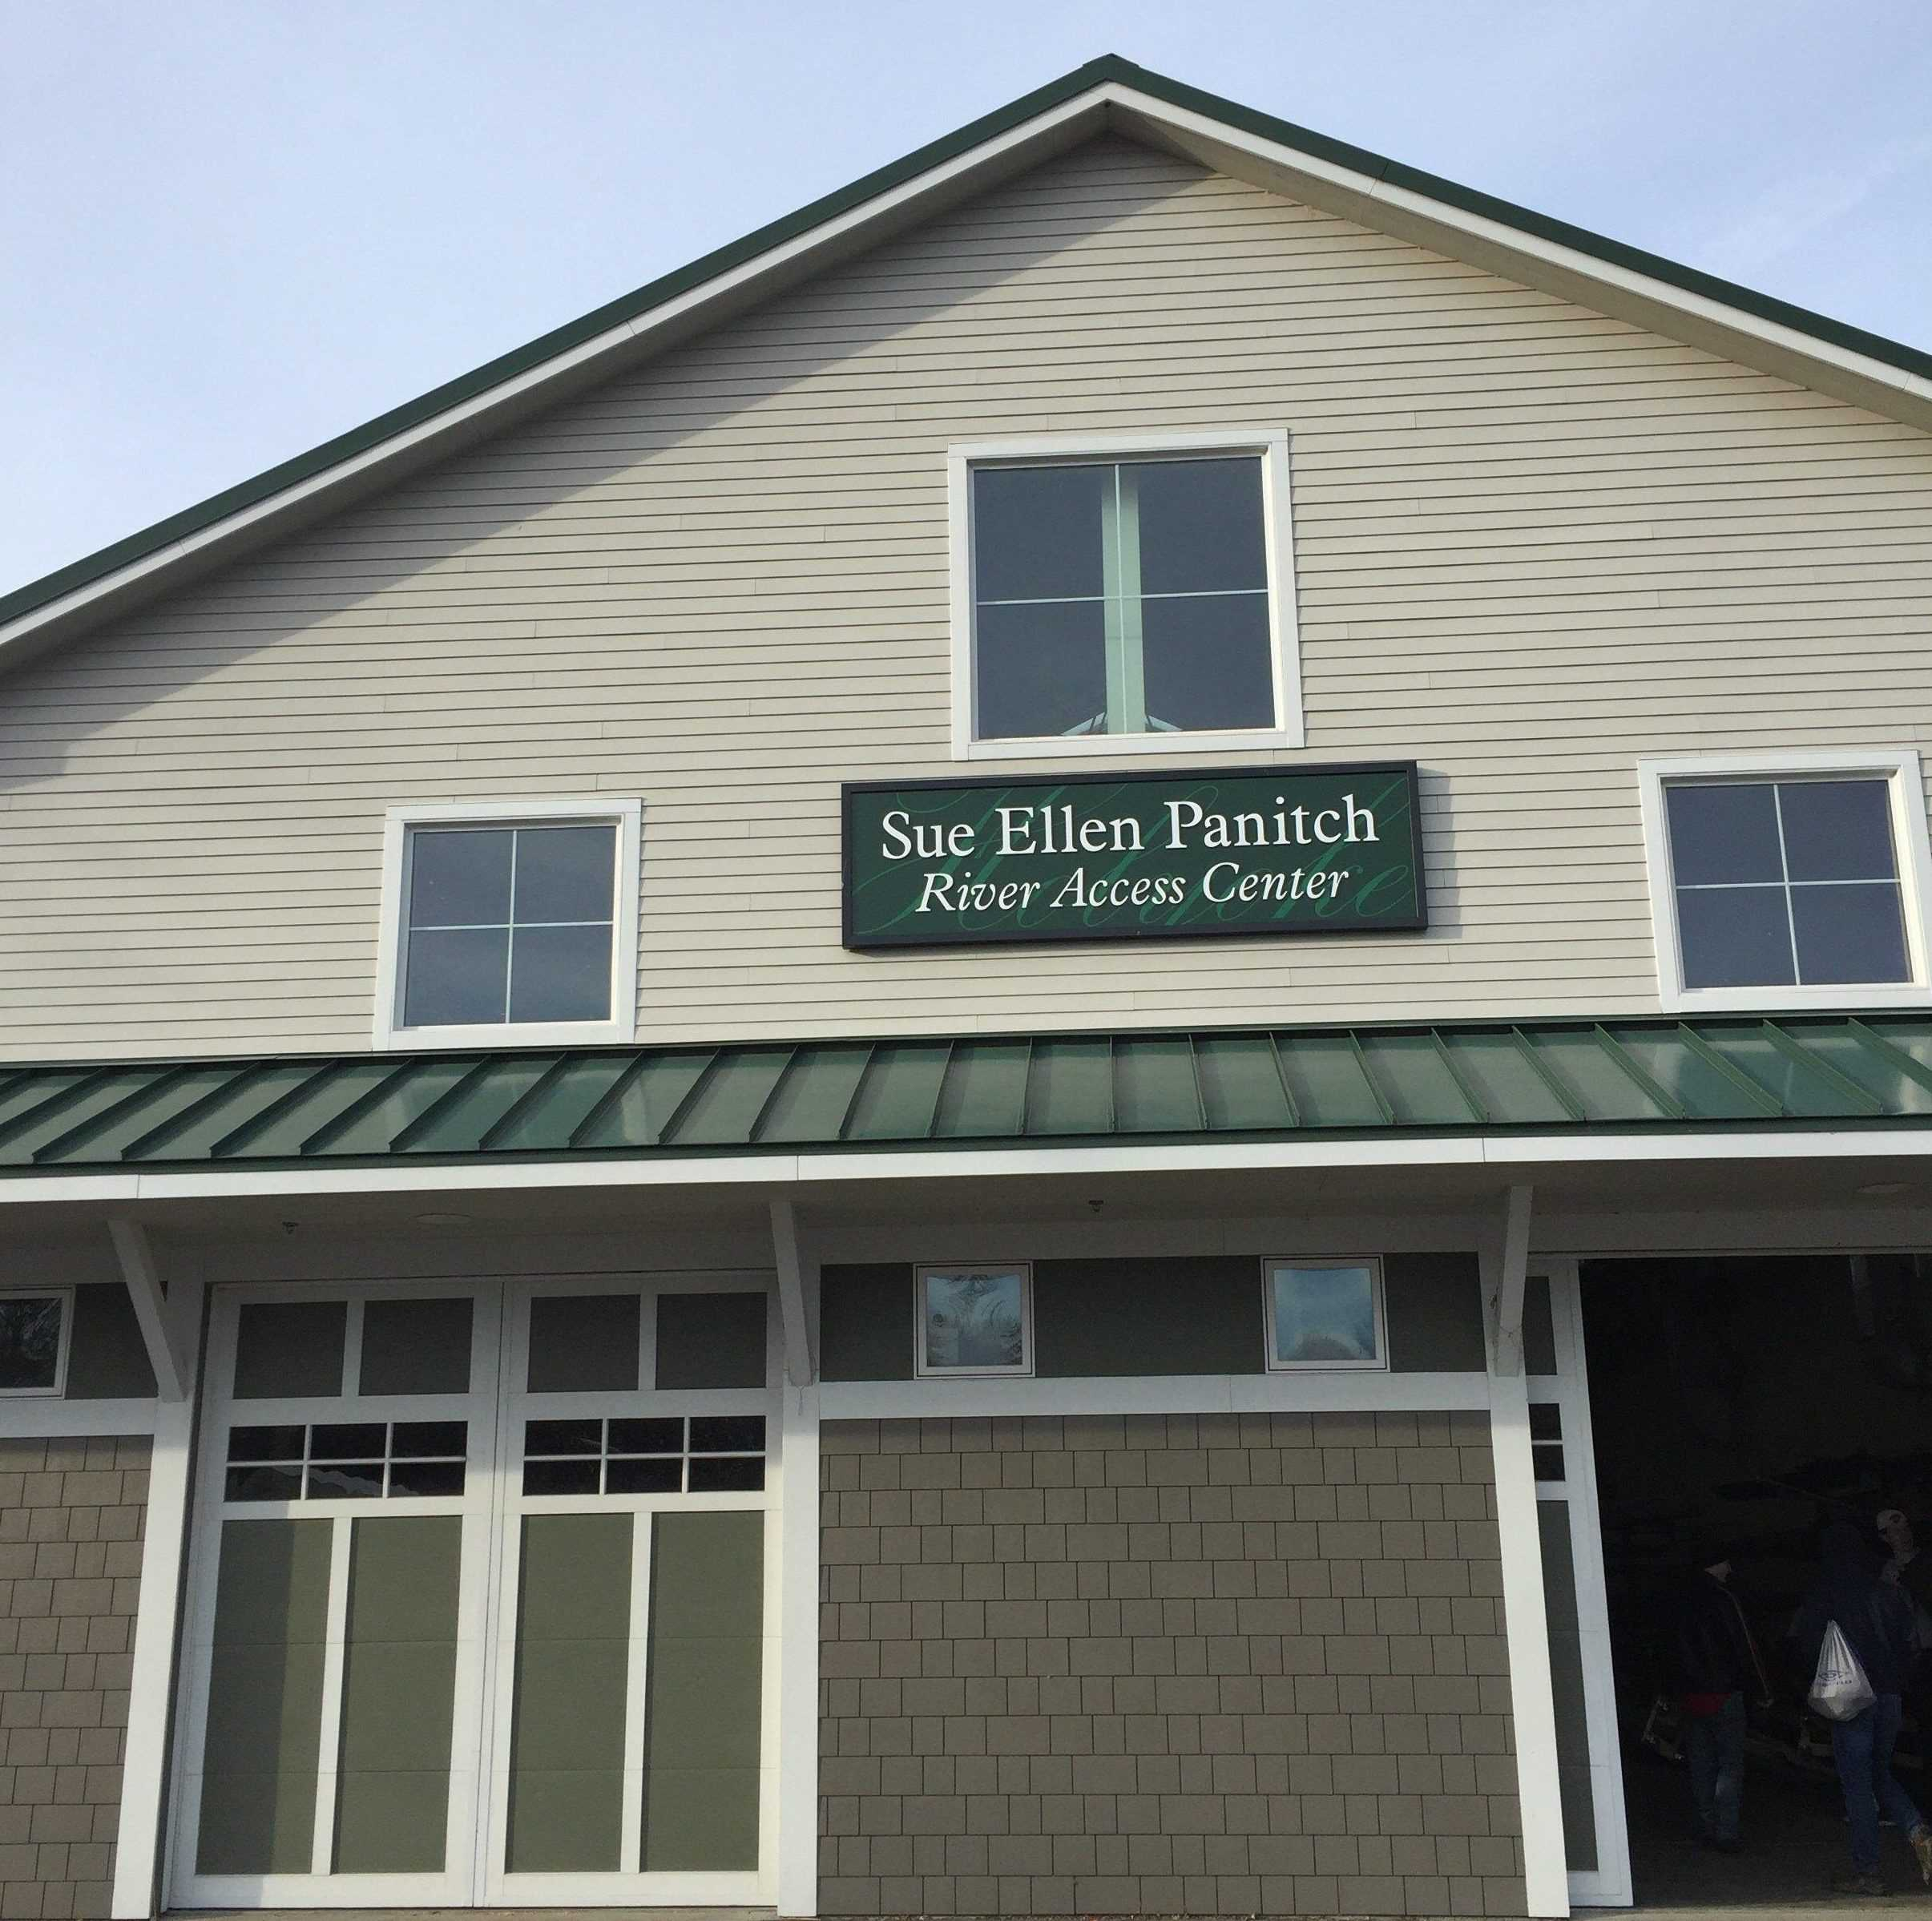 The team holds their practices at the Holyoke Boat House, a facility shared by multiple schools.